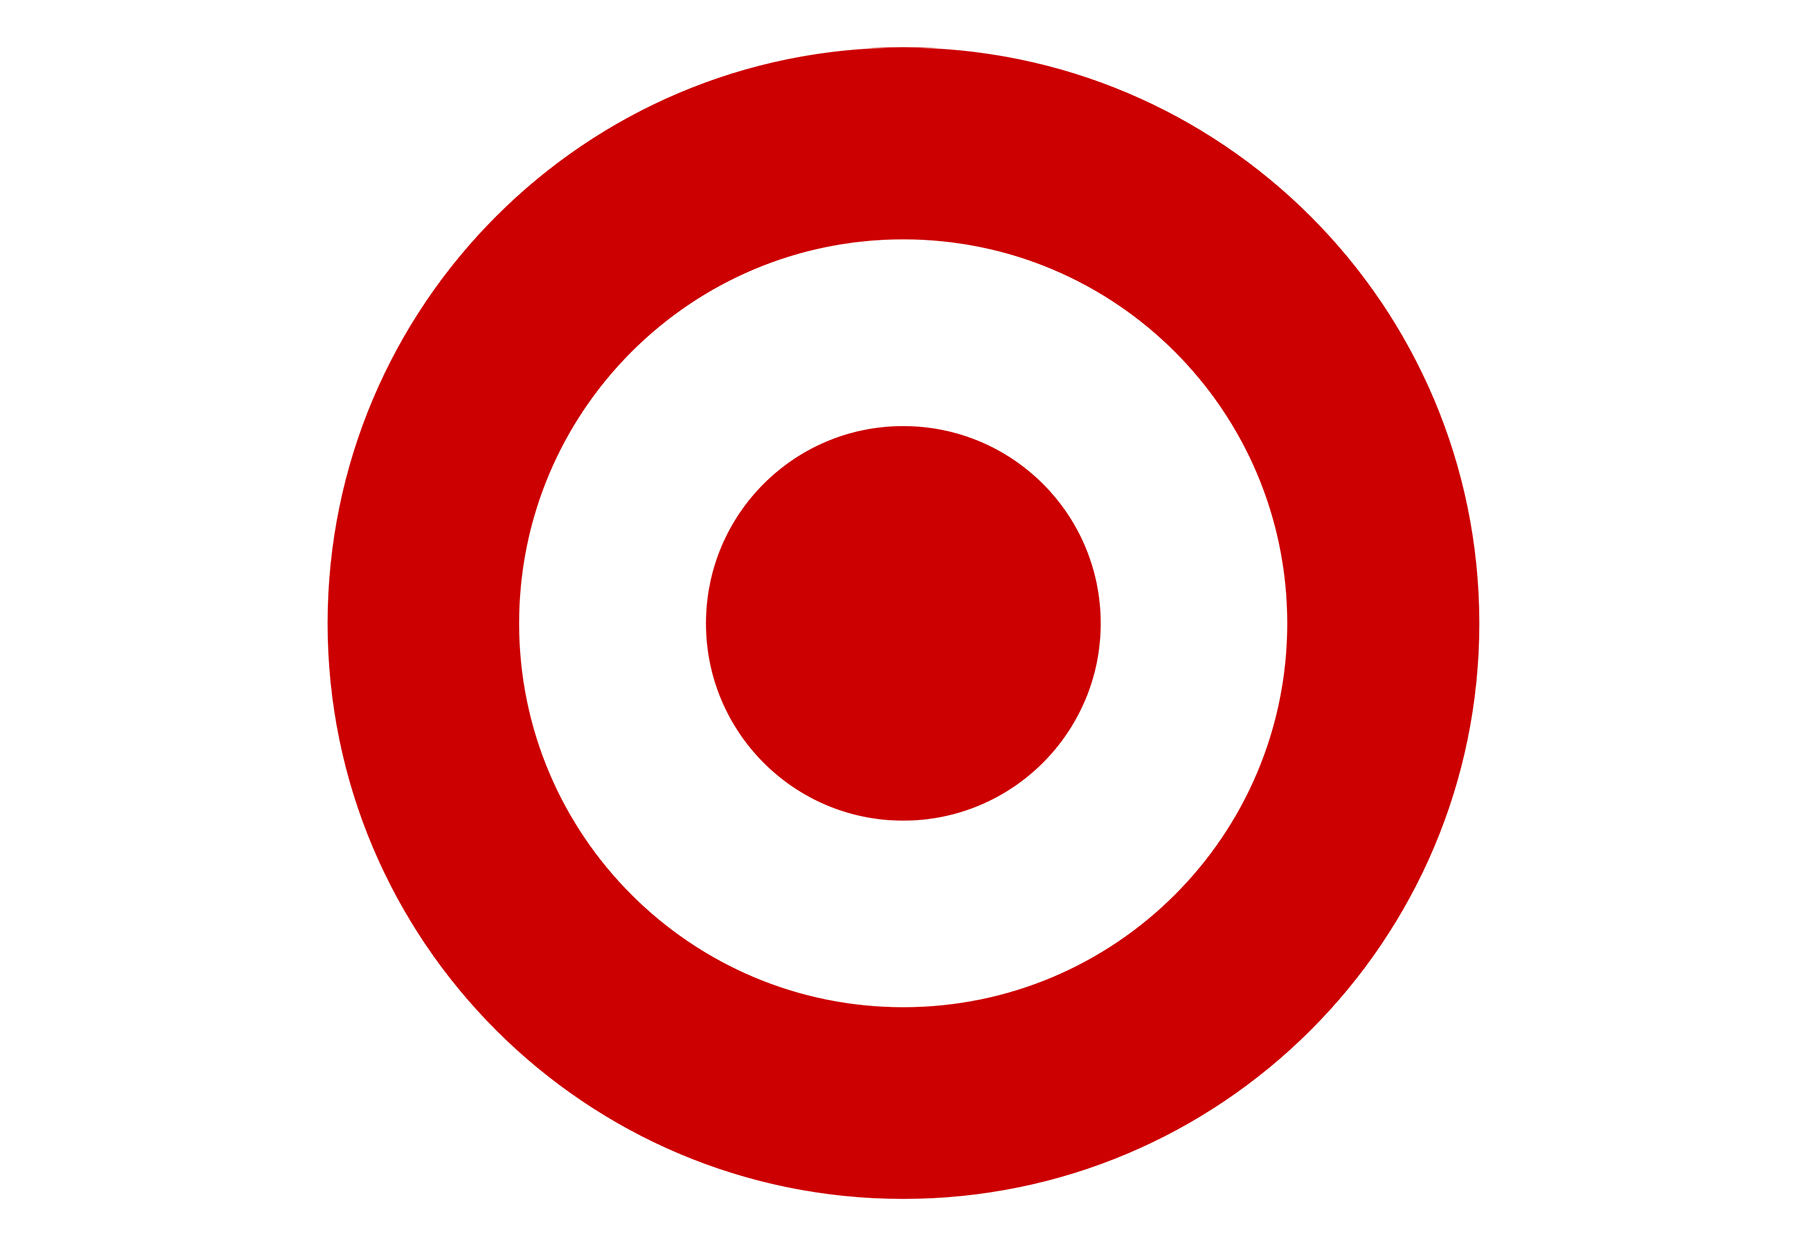 Meaning Target logo and symbol.